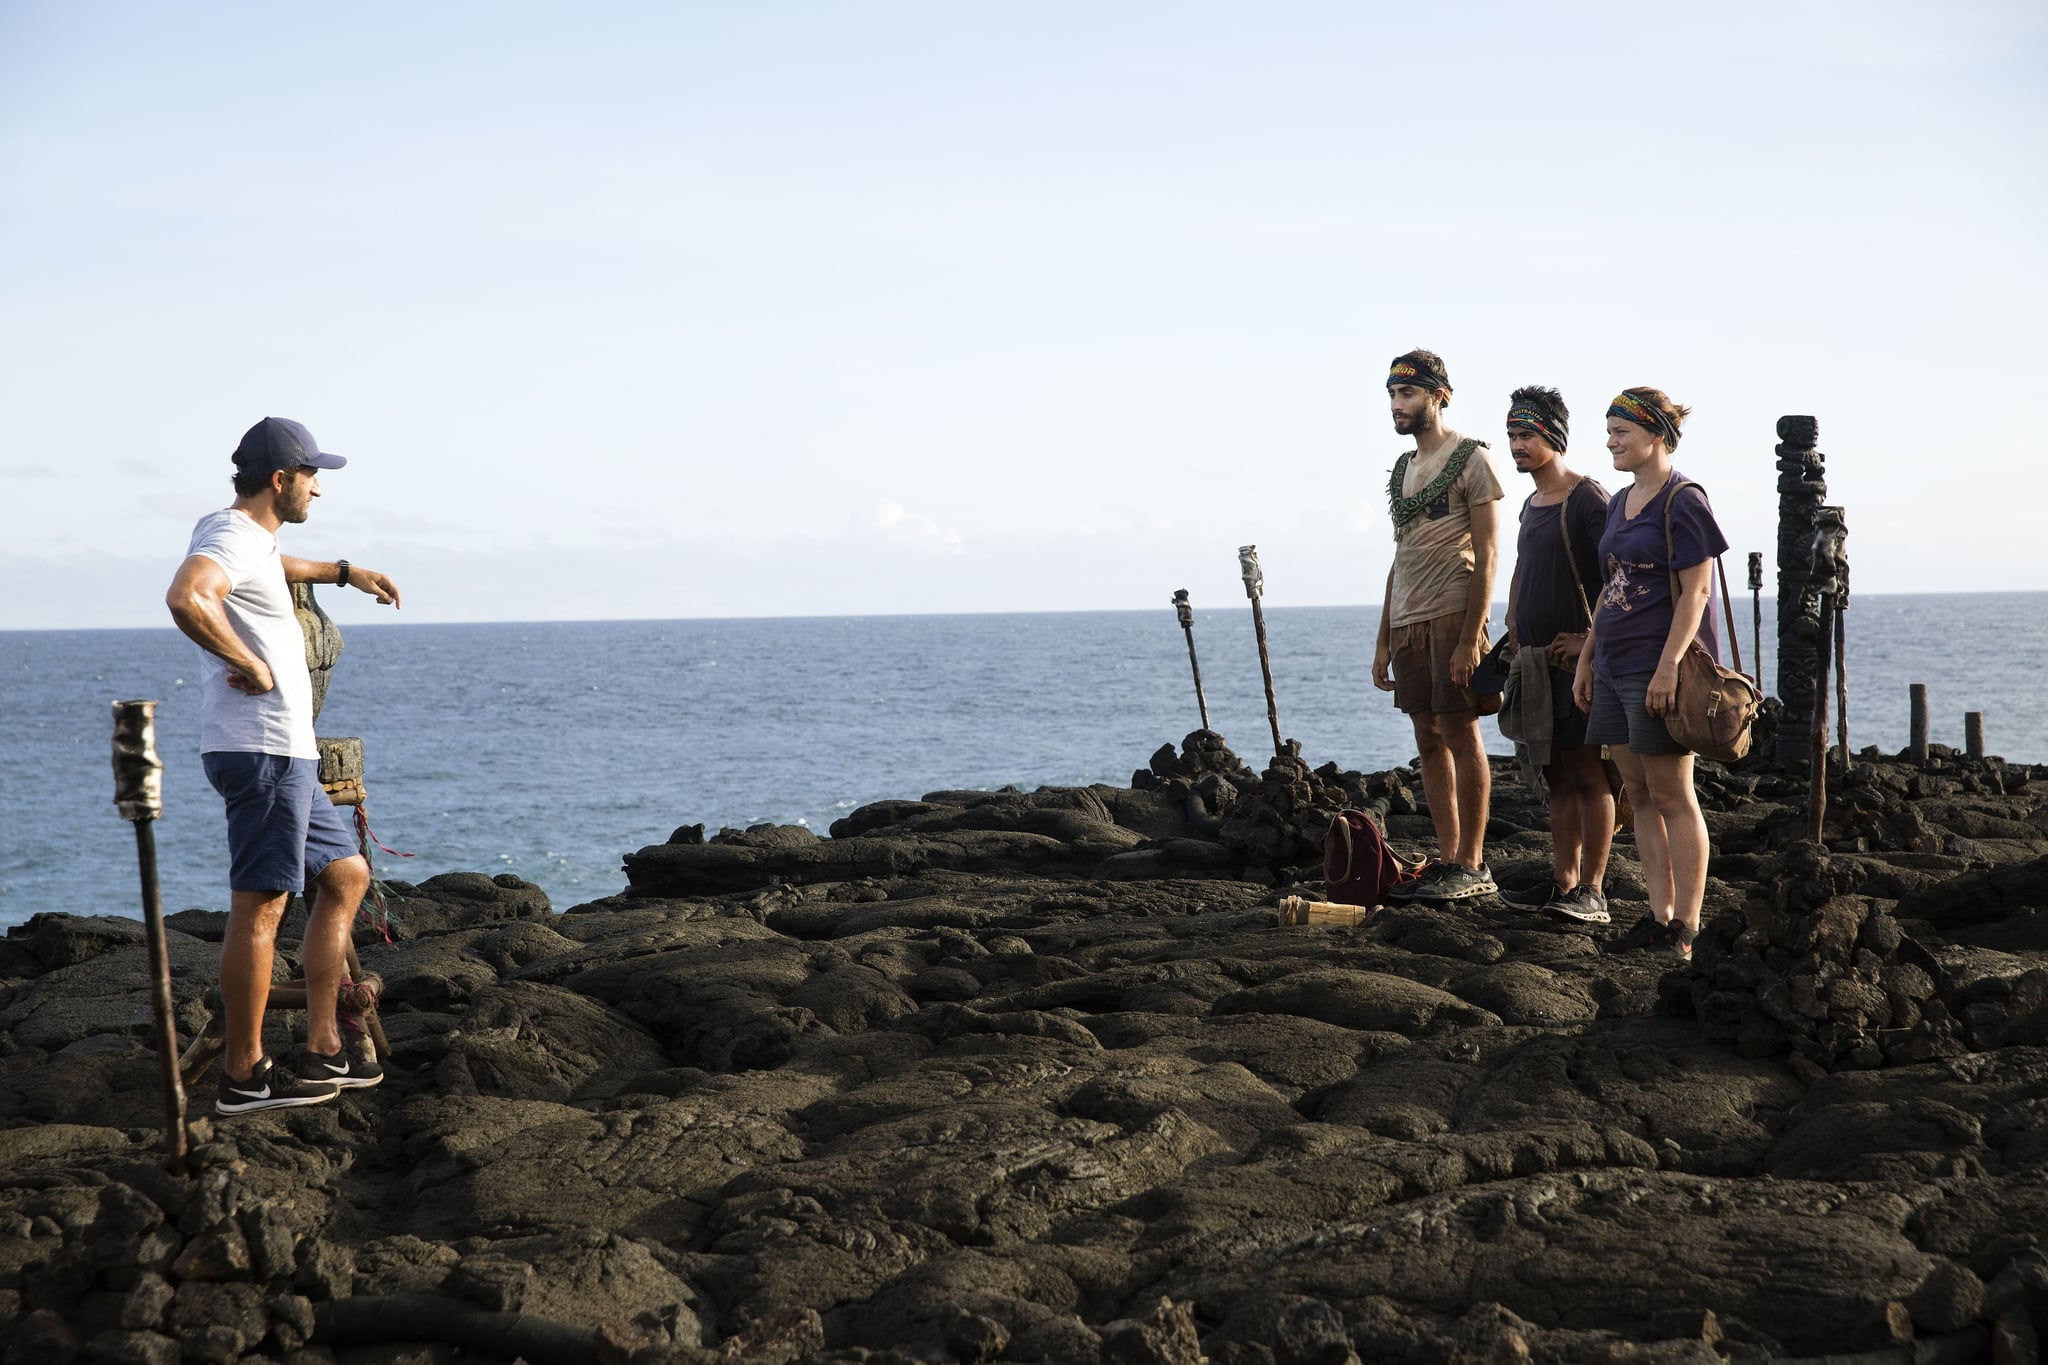 survivor australia - photo #23